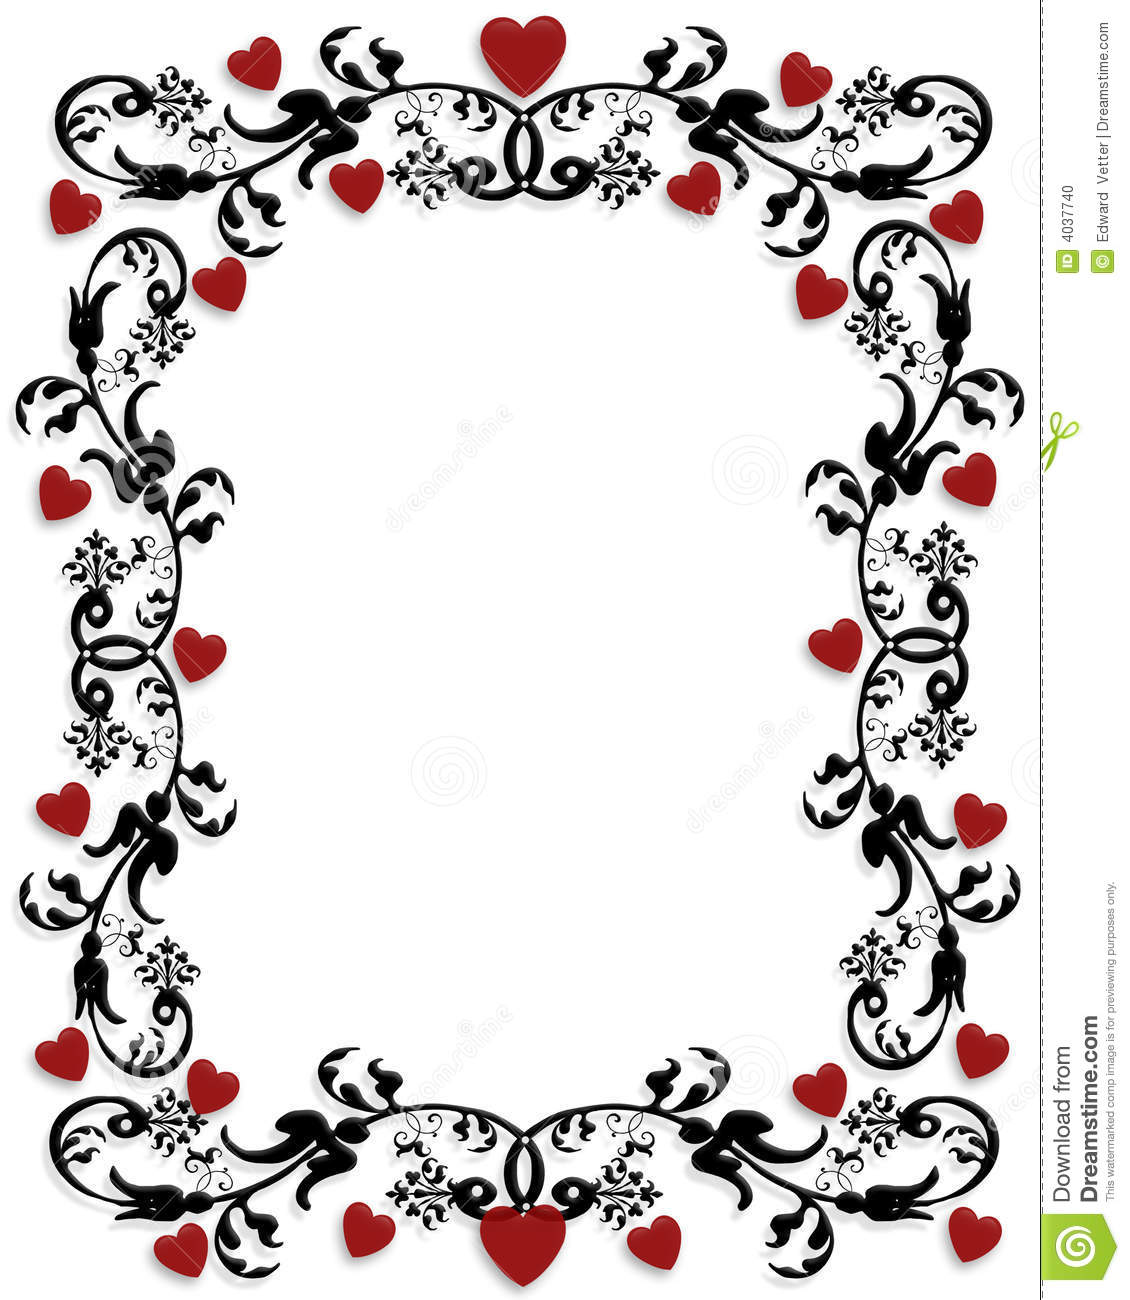 Valentines Day Borders Black And White | www.imgkid.com ...